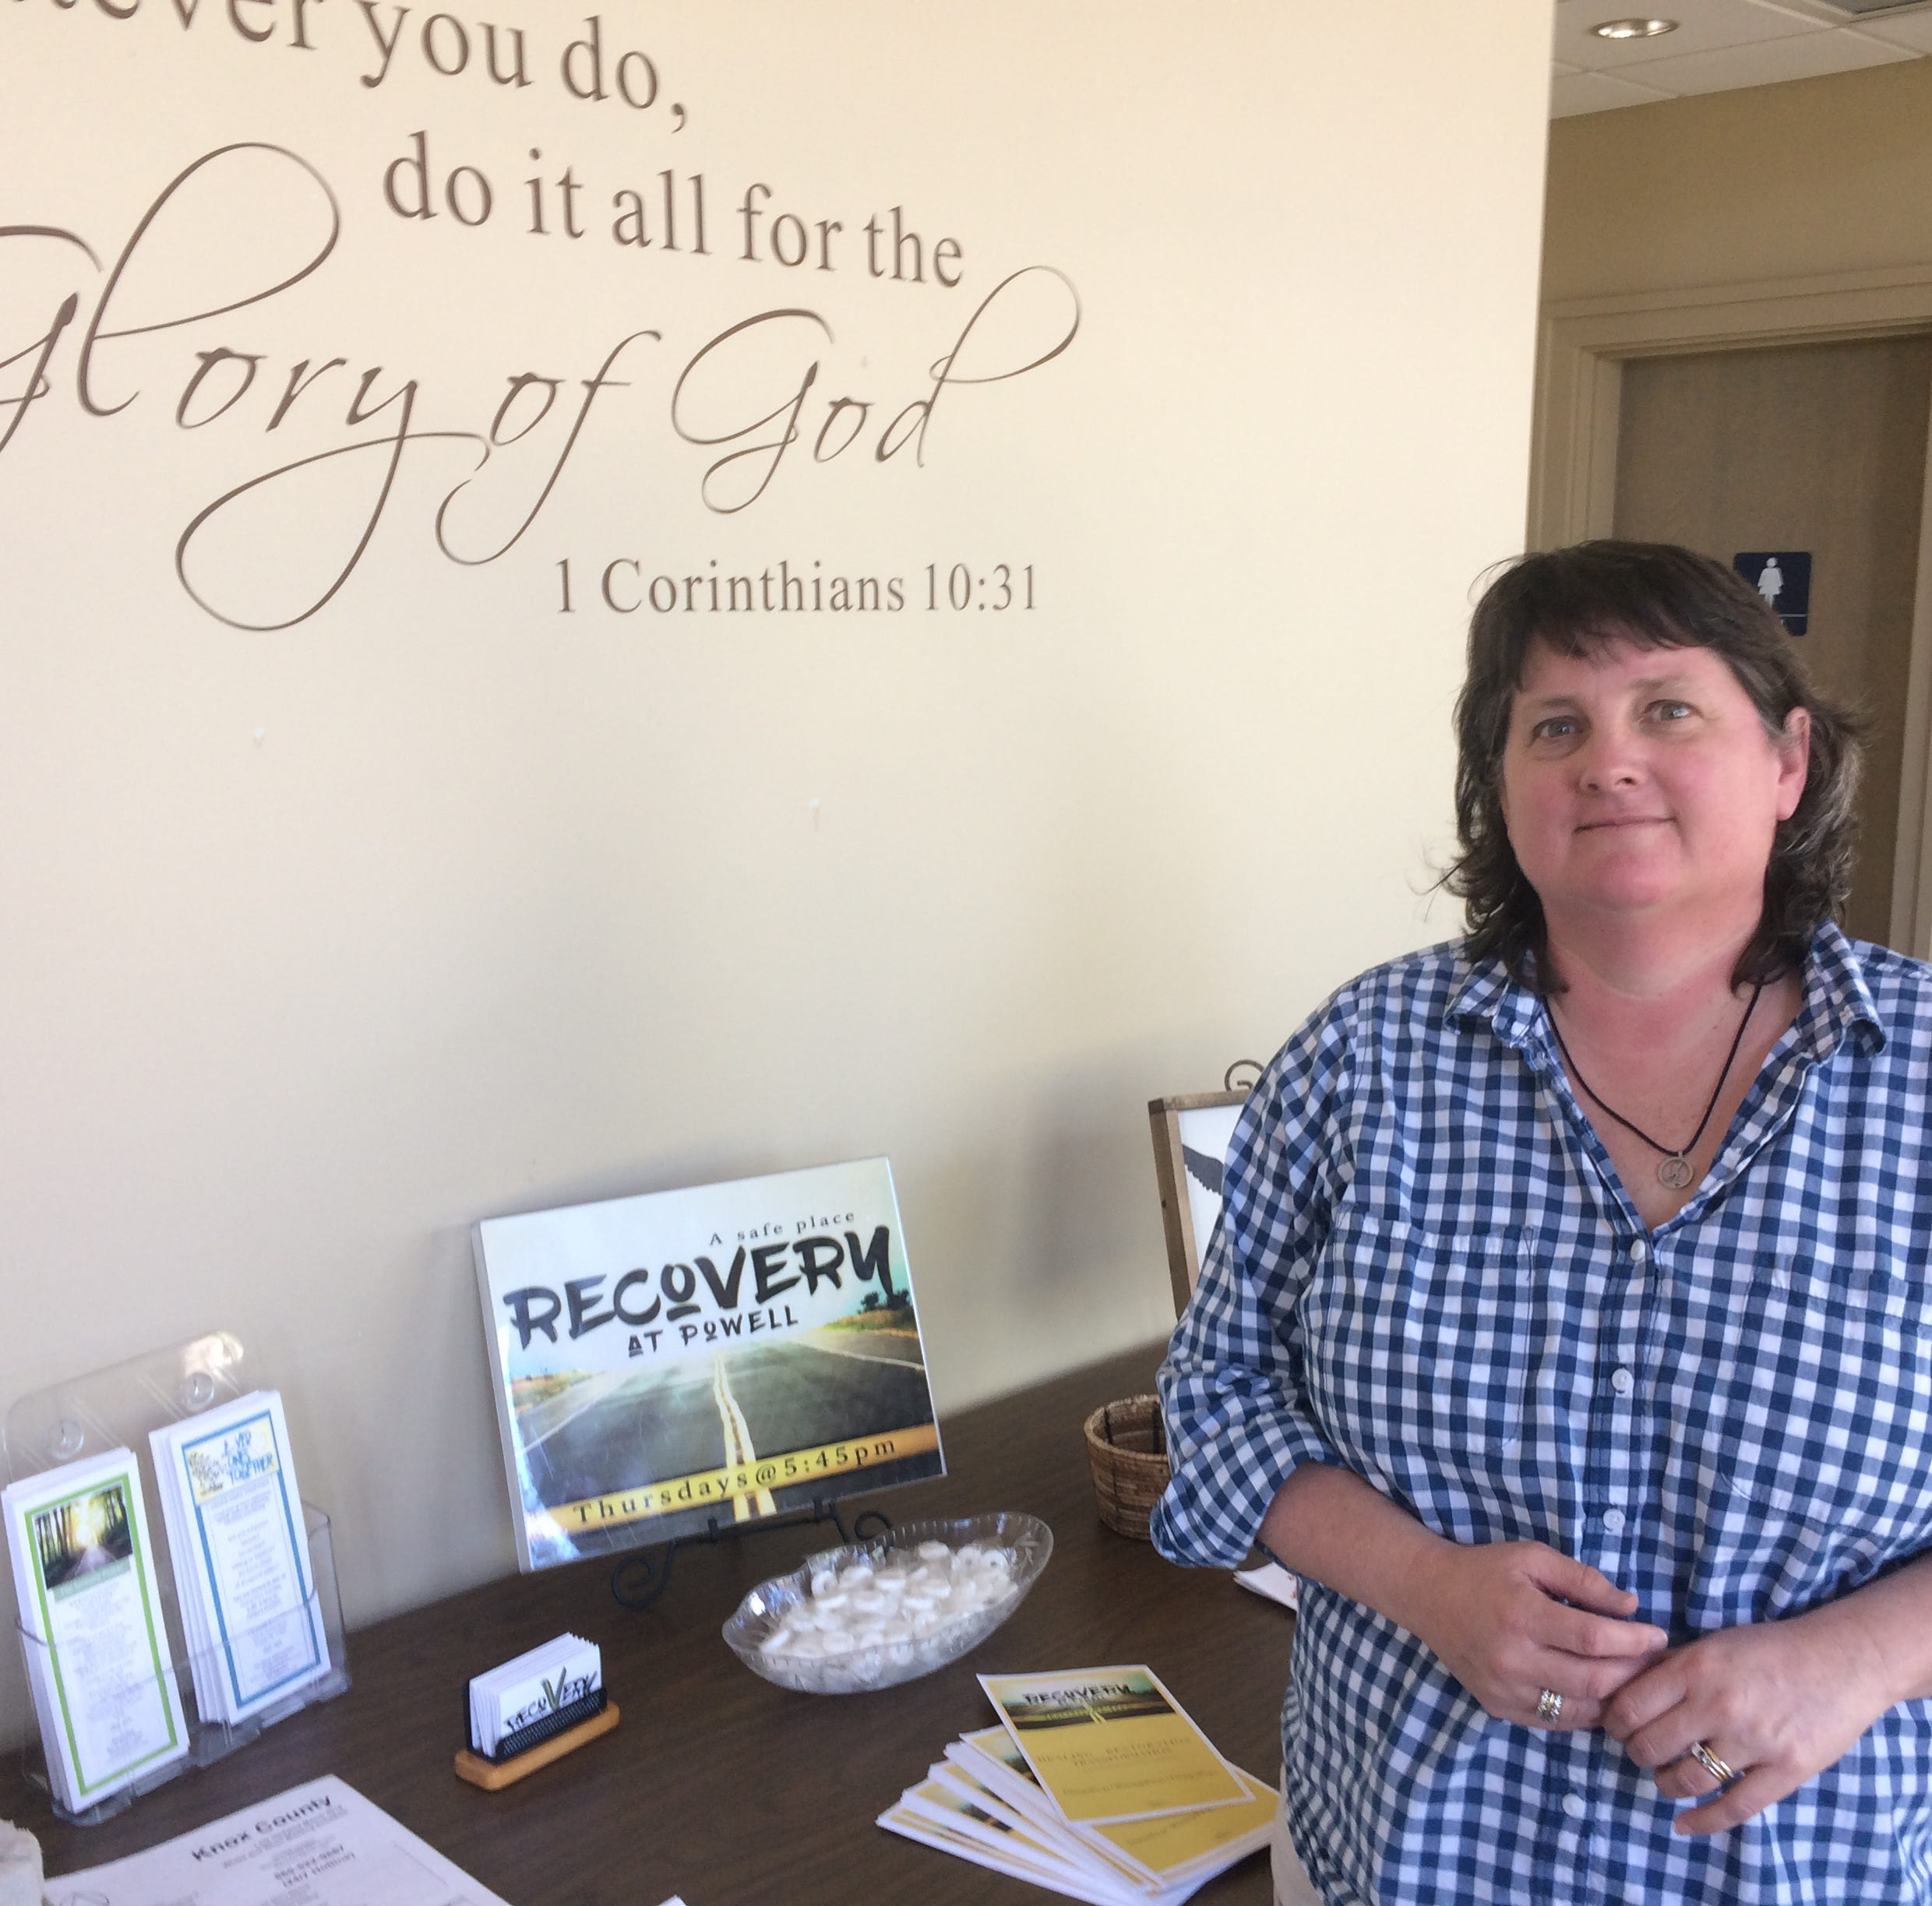 Shopper News blog: Recovery ministry at Powell Church: It's about 'community'